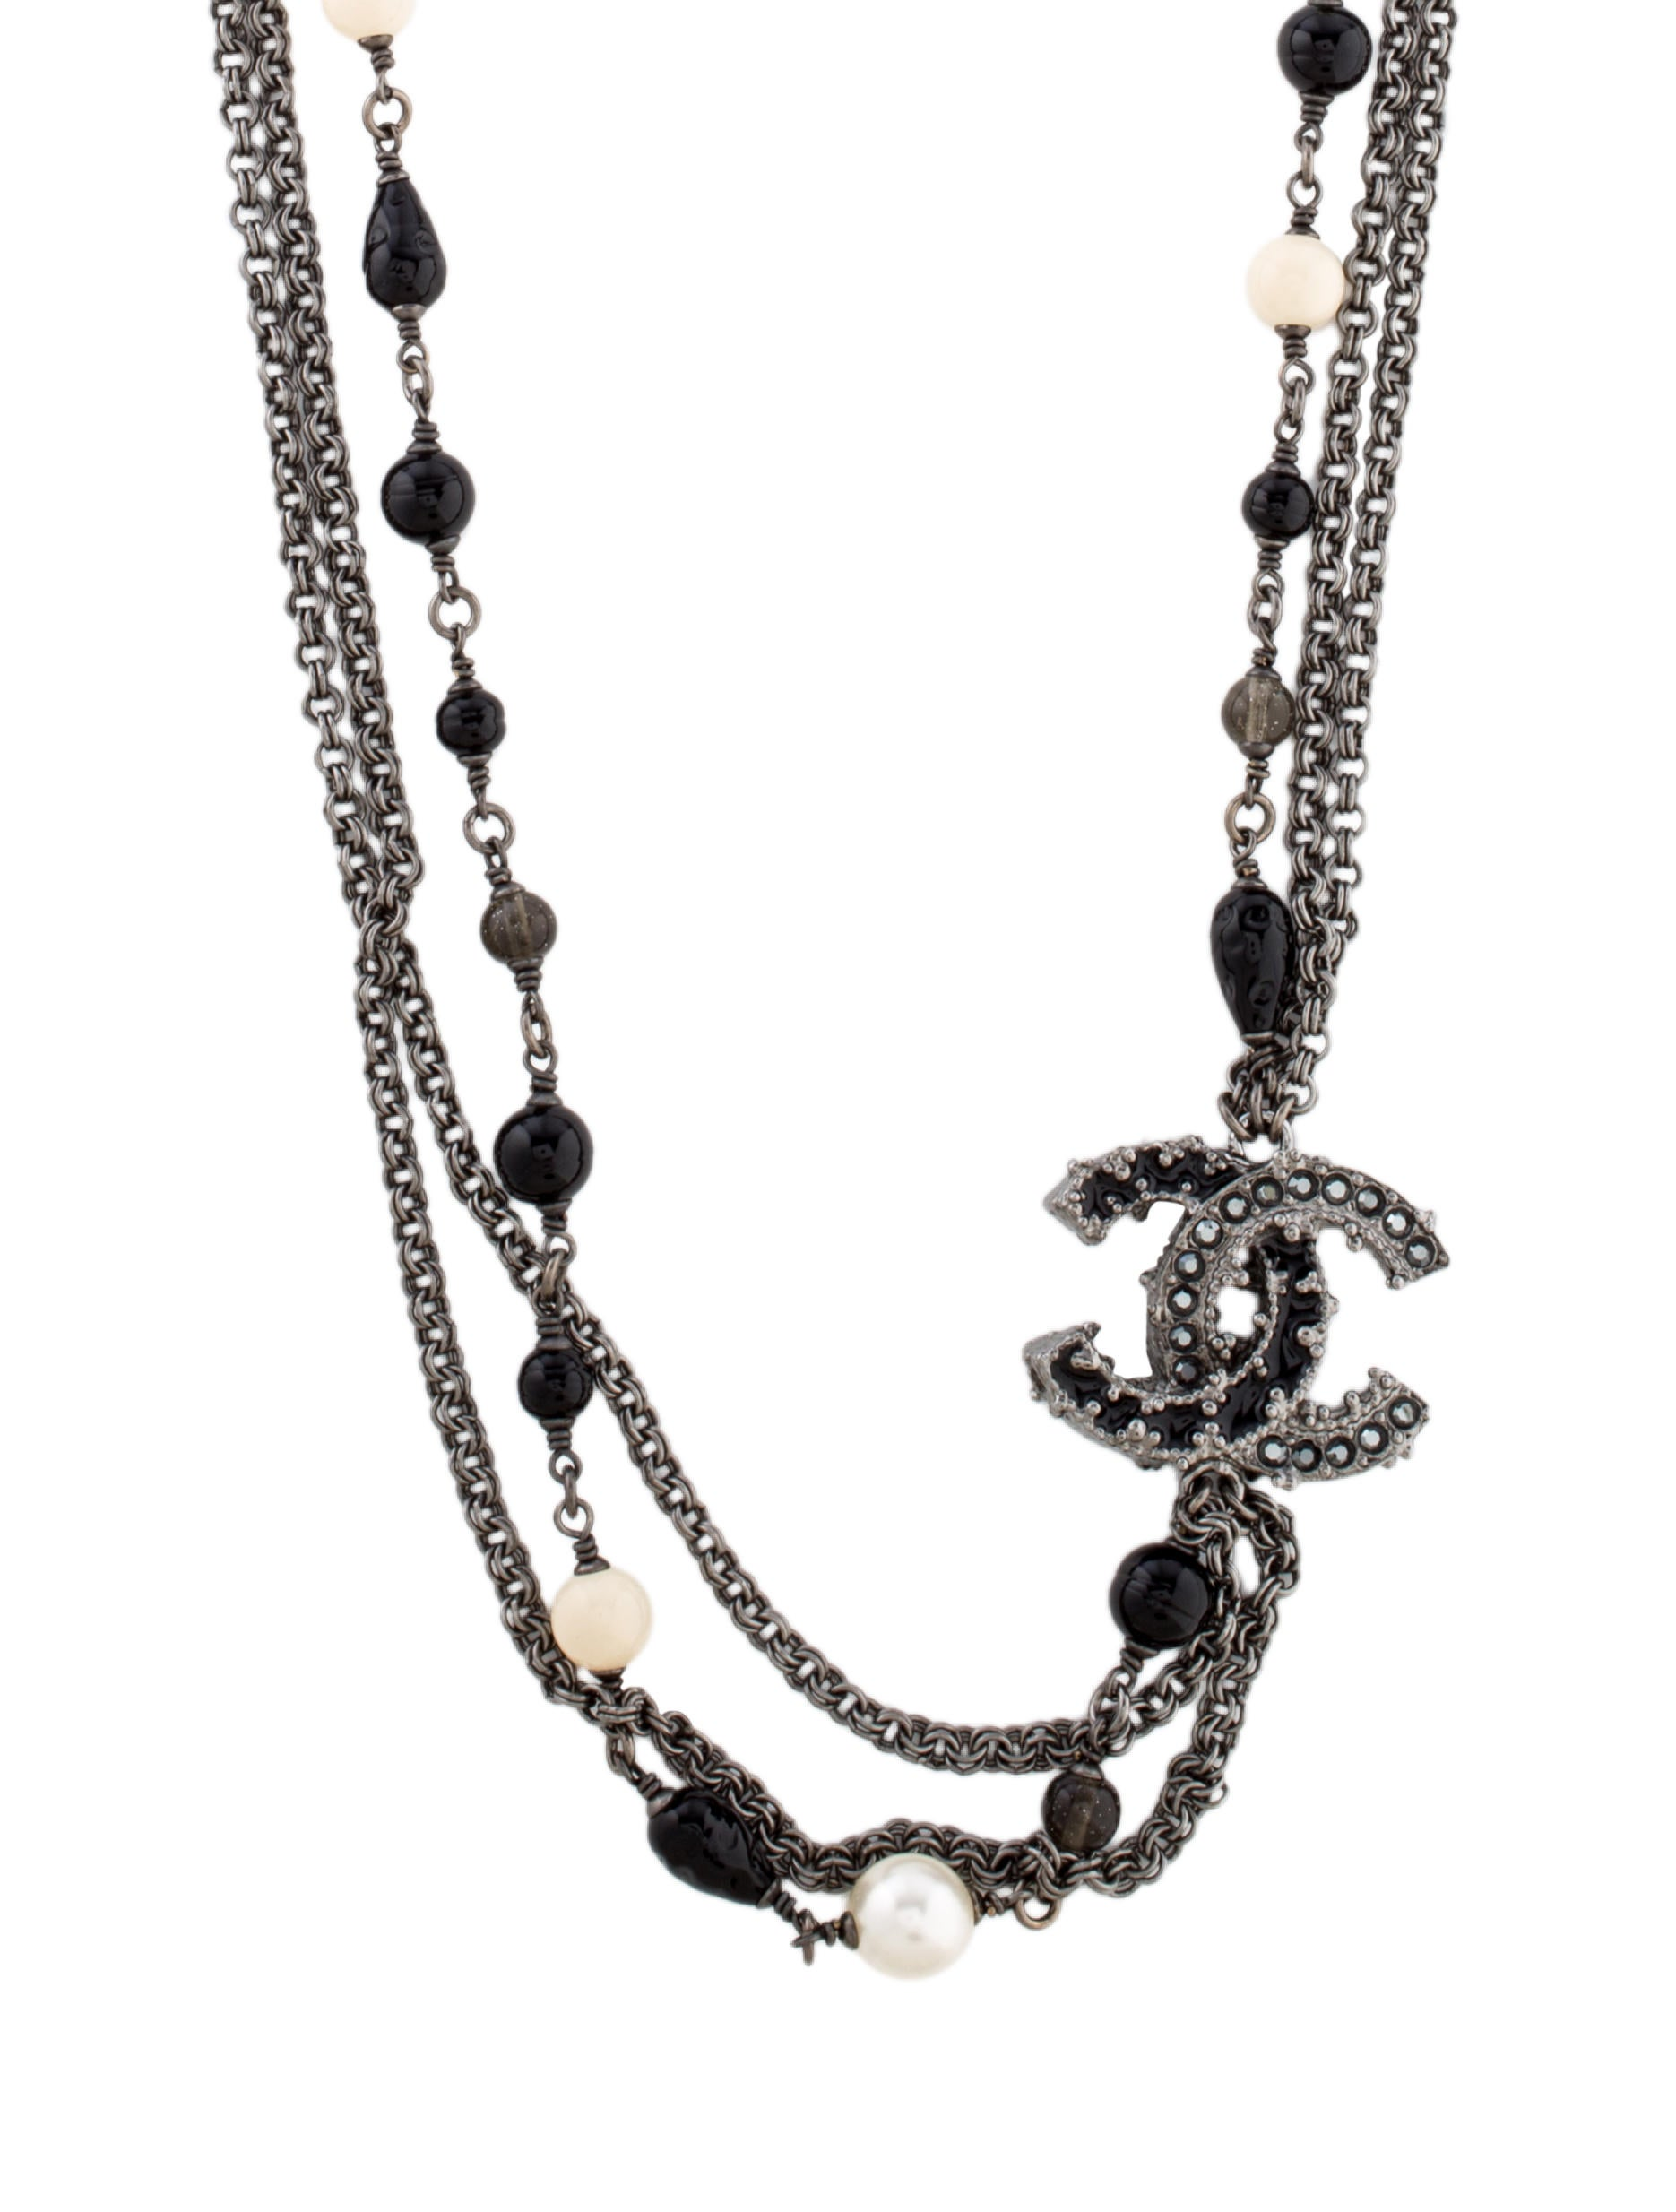 chanel faux pearl cc necklace necklaces cha150454. Black Bedroom Furniture Sets. Home Design Ideas